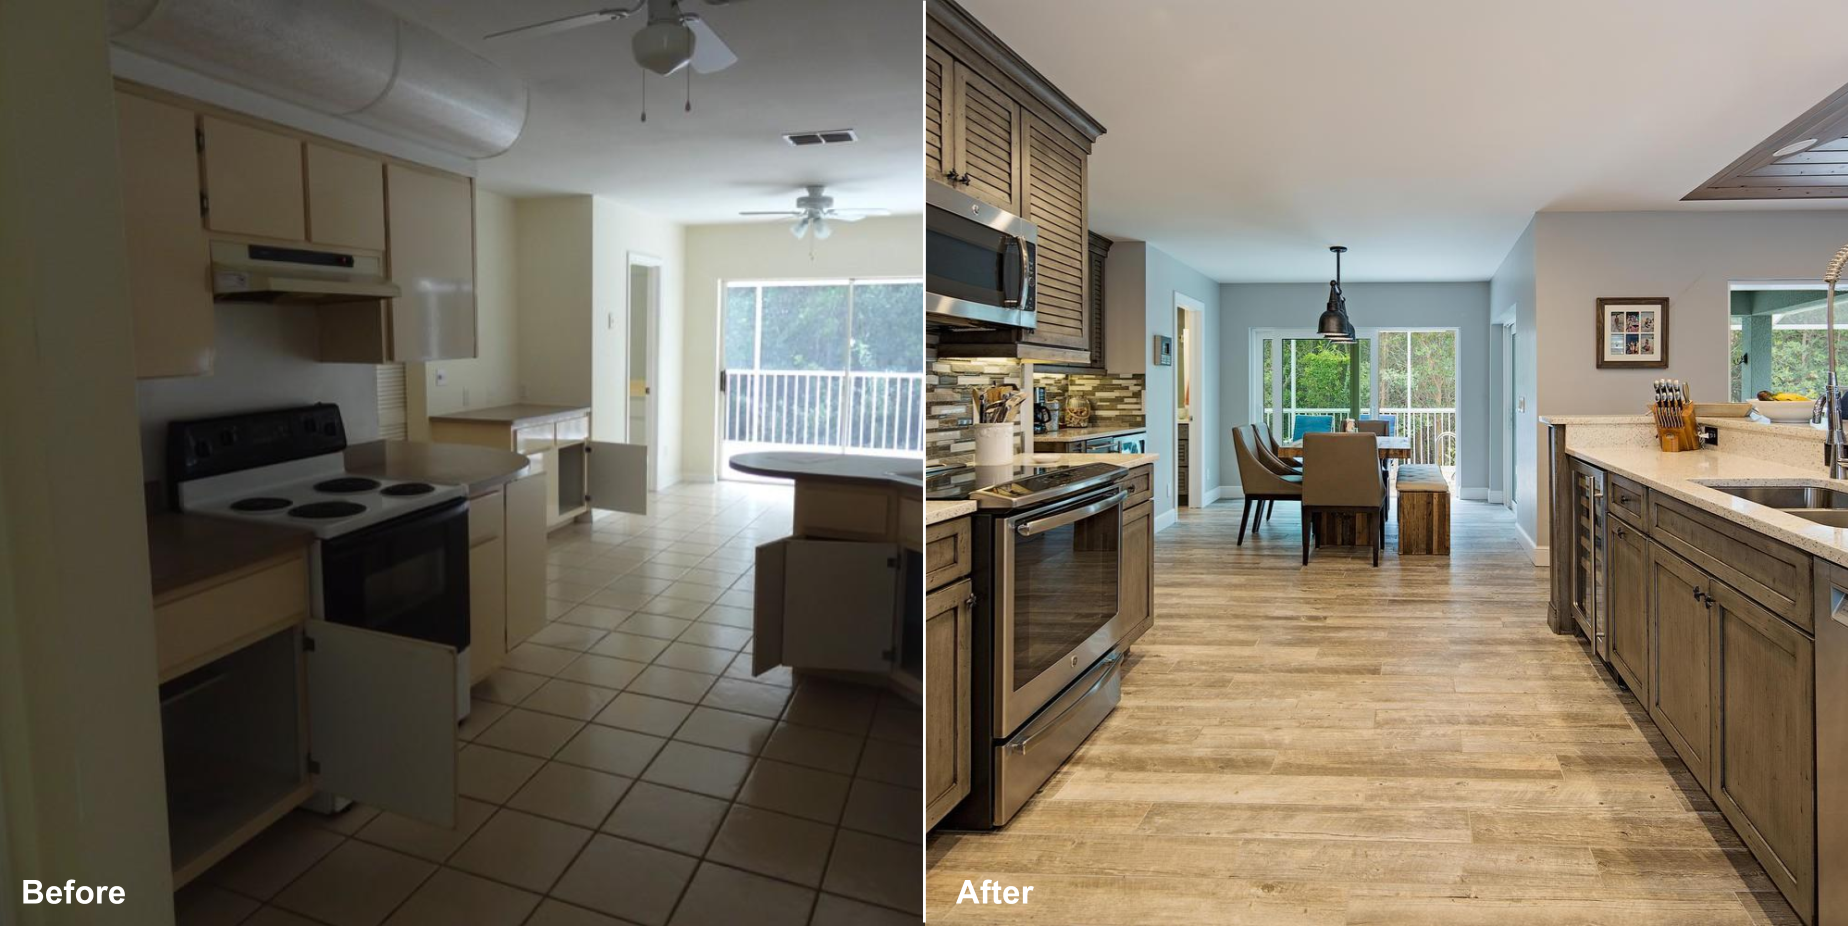 16 Fairview Kitchen Before and After.png